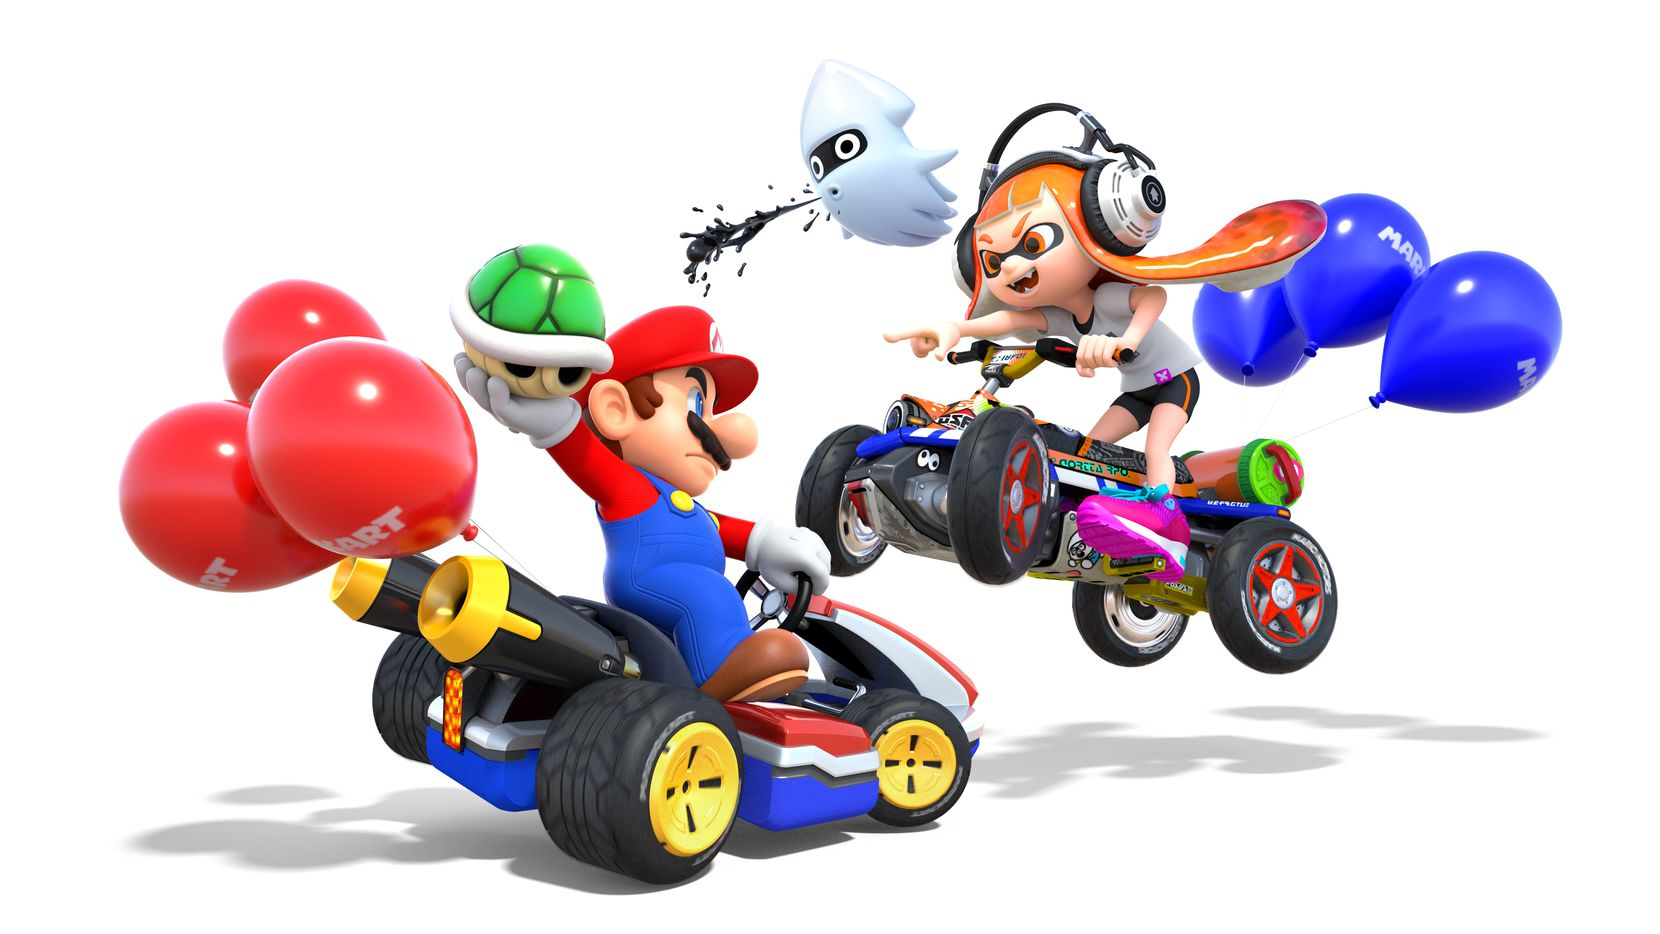 Mario Kart'-inspired go-kart race is coming to Dallas